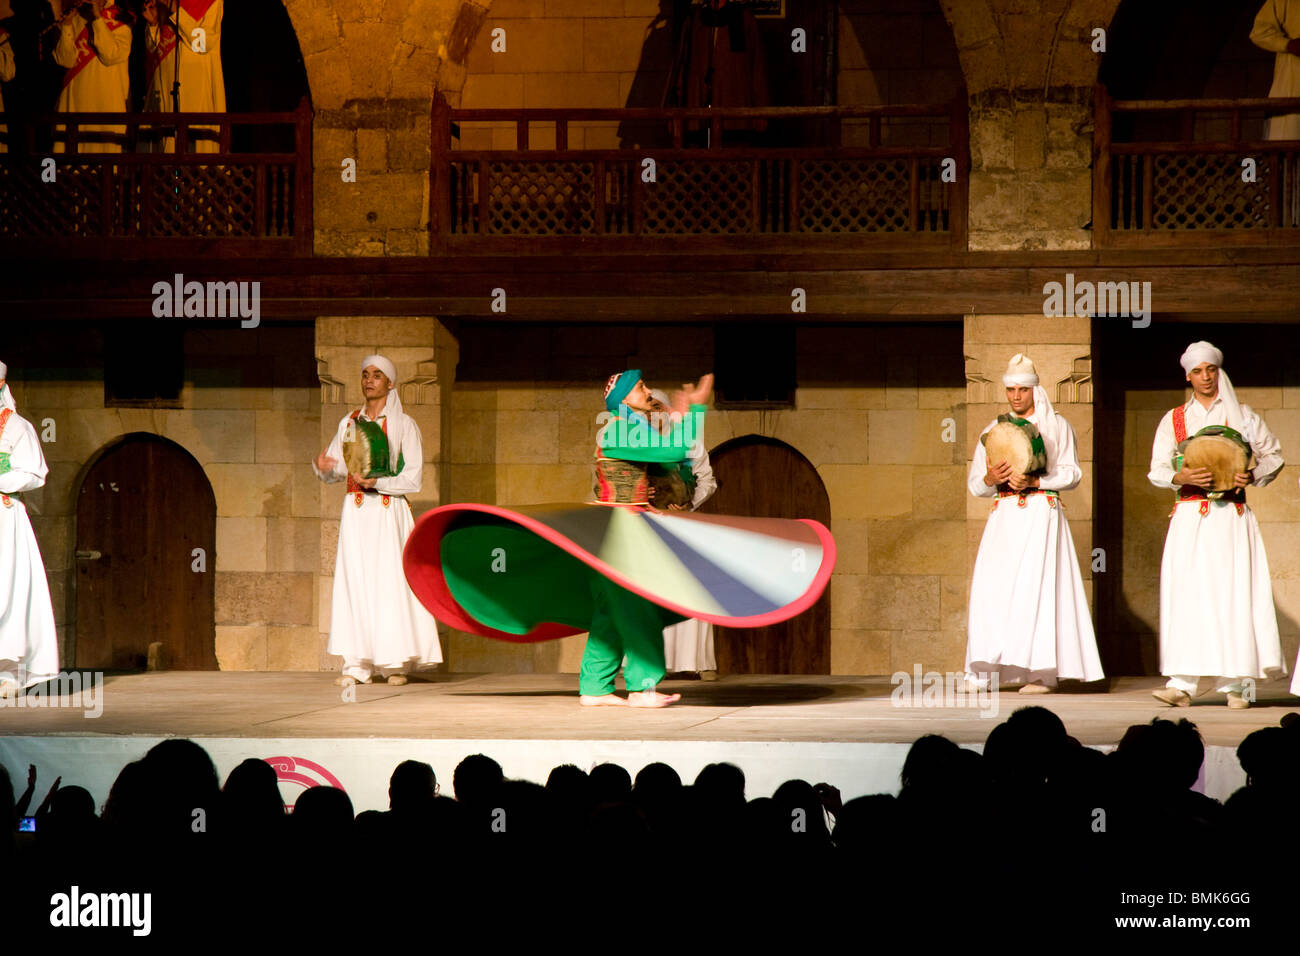 Whirling dervish performing a Sufi dance at the Al-Ghouri Mausoleum at night, Cairo, Al Qahirah, Egypt Stock Photo